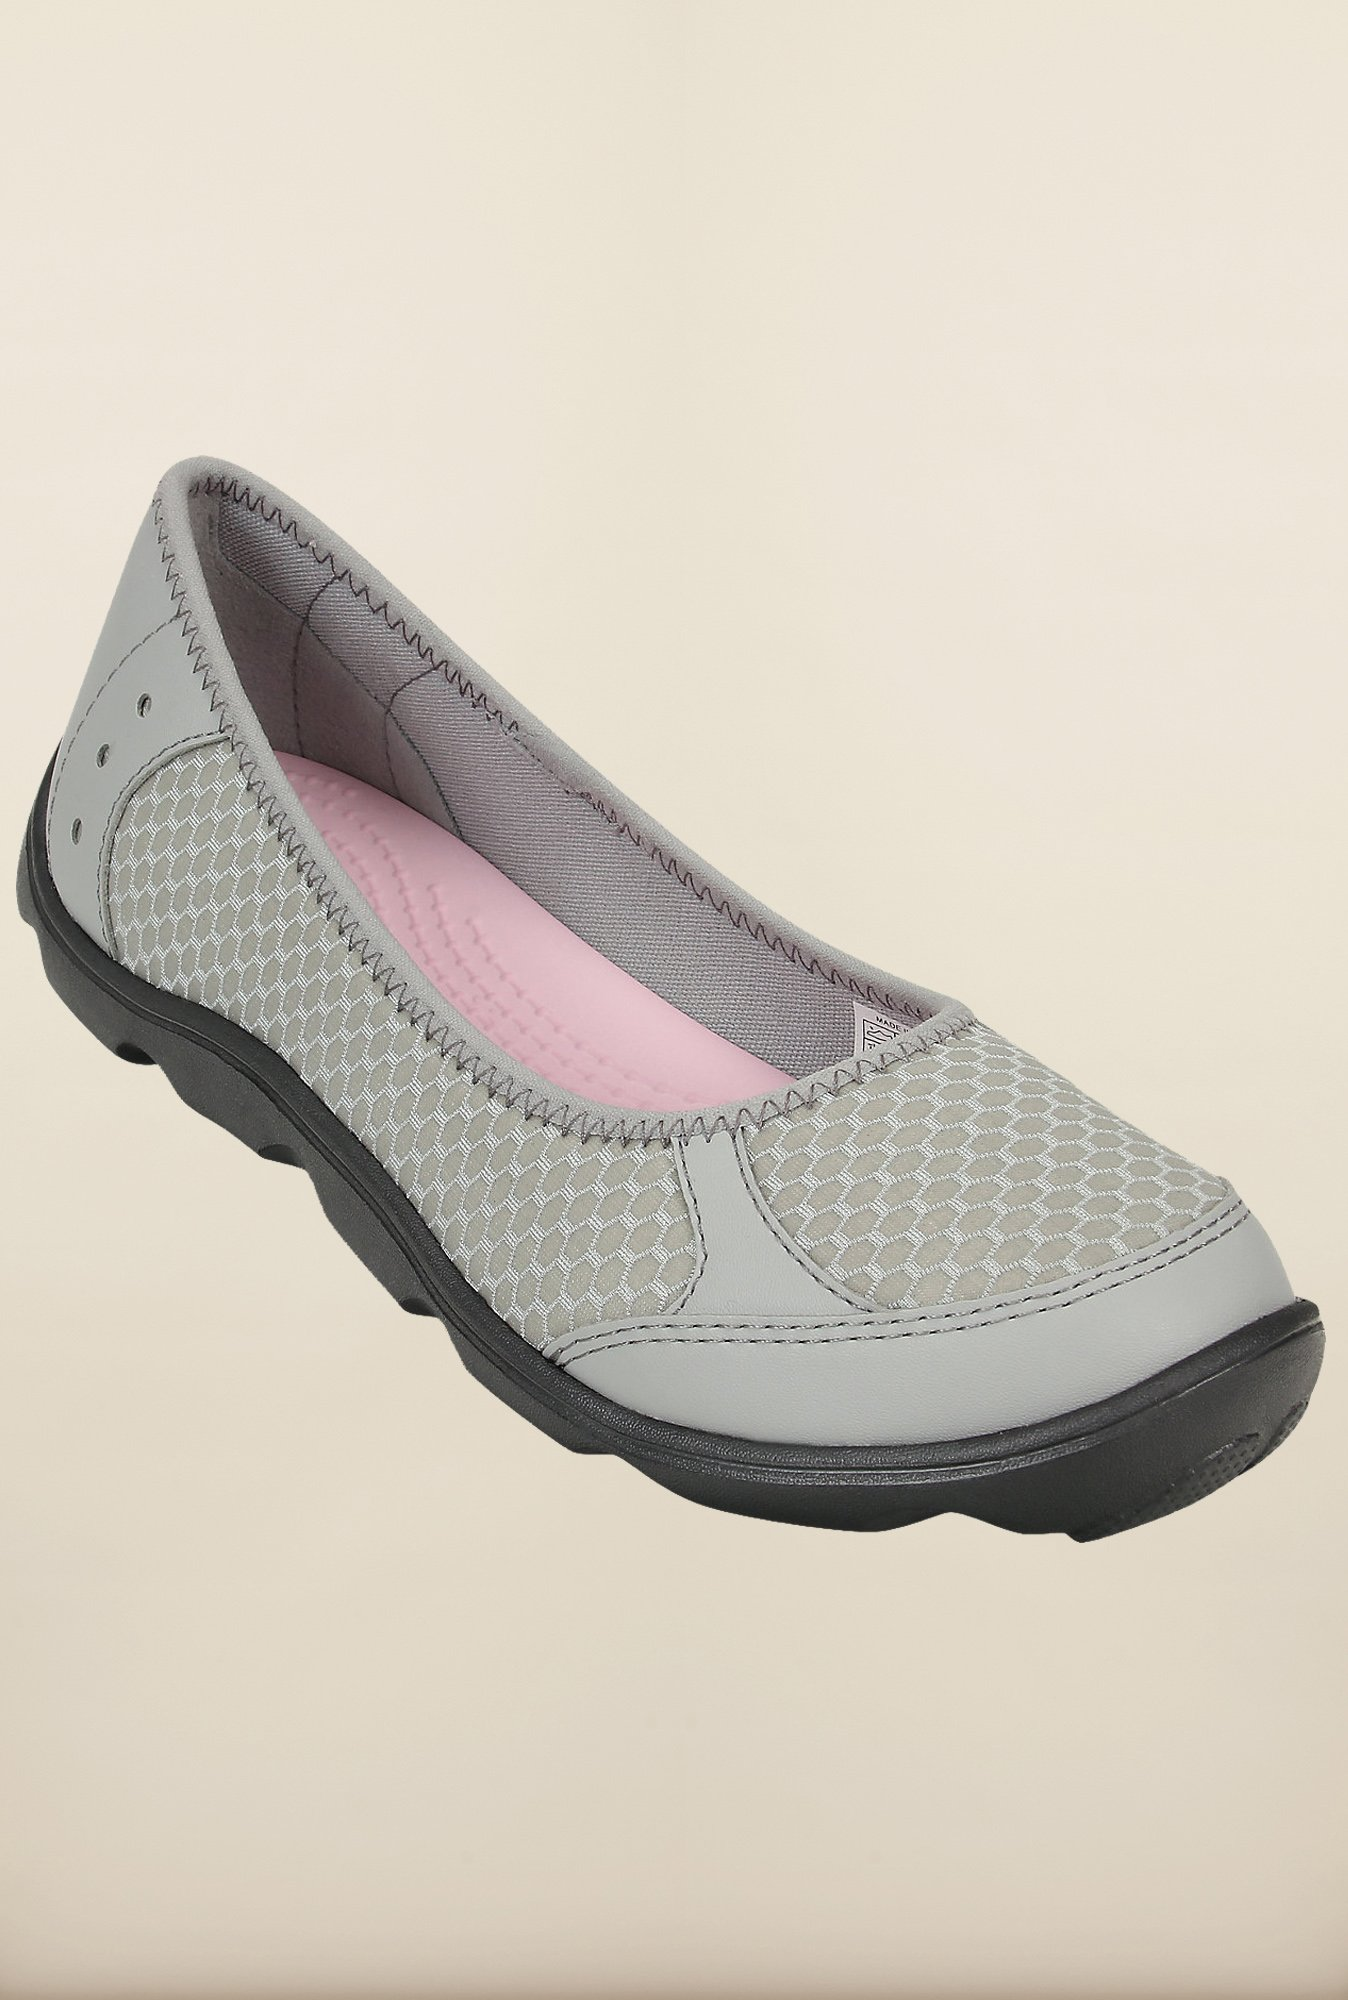 Crocs Duet Busy Day Ballet Light Grey and Graphite Ballerina